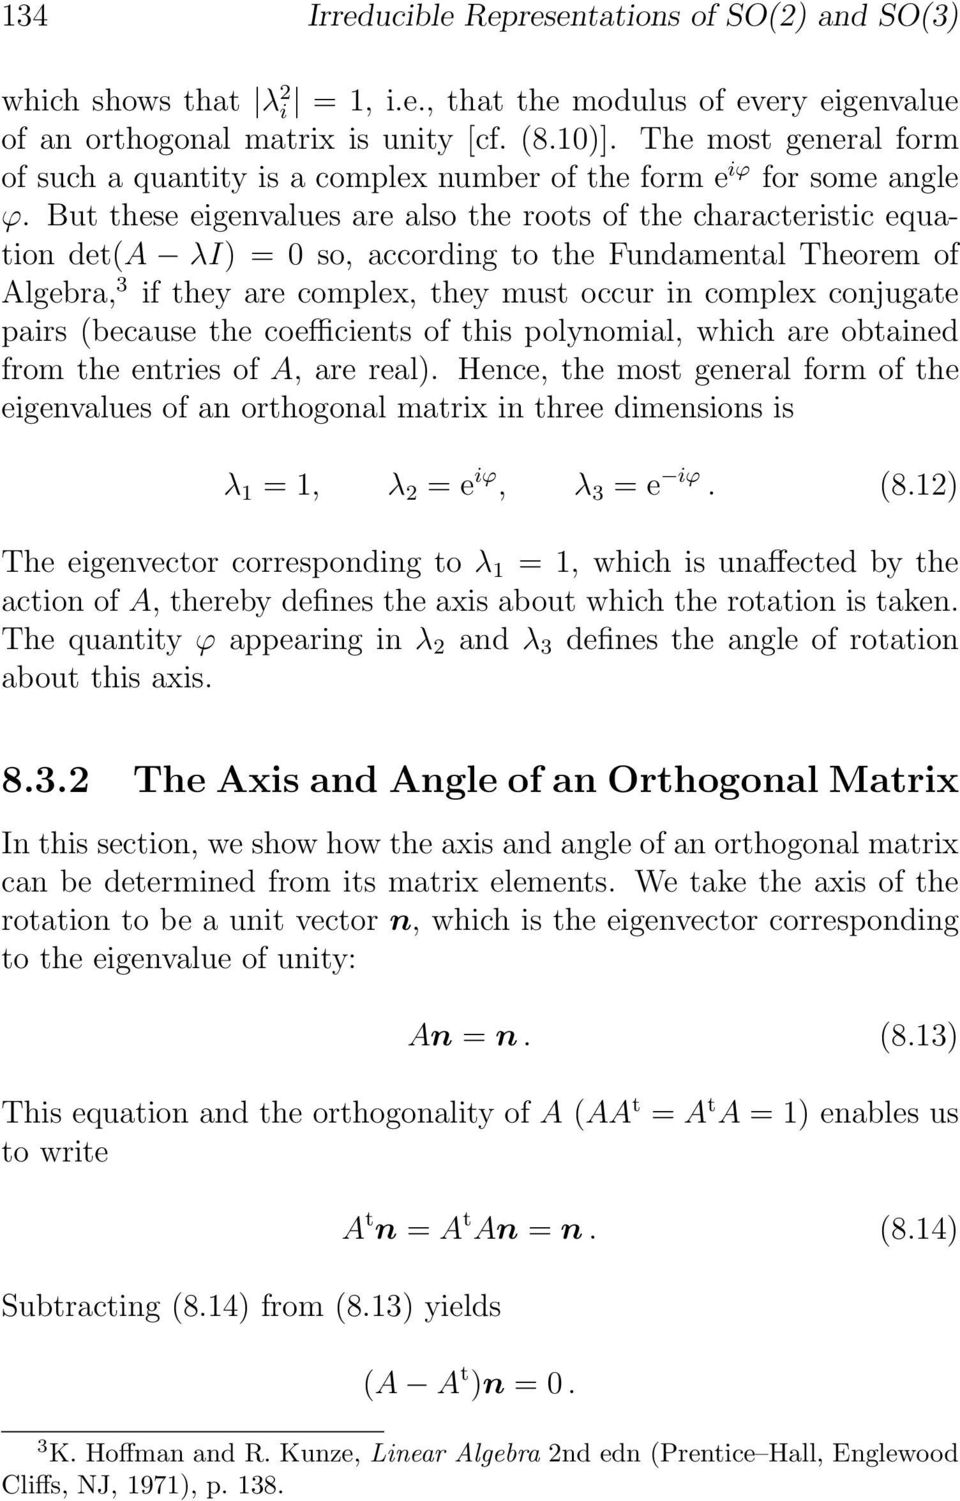 But these eigenvalues are also the roots of the characteristic equation det(a λi) = so, according to the Fundamental Theorem of Algebra, 3 if they are complex, they must occur in complex conjugate